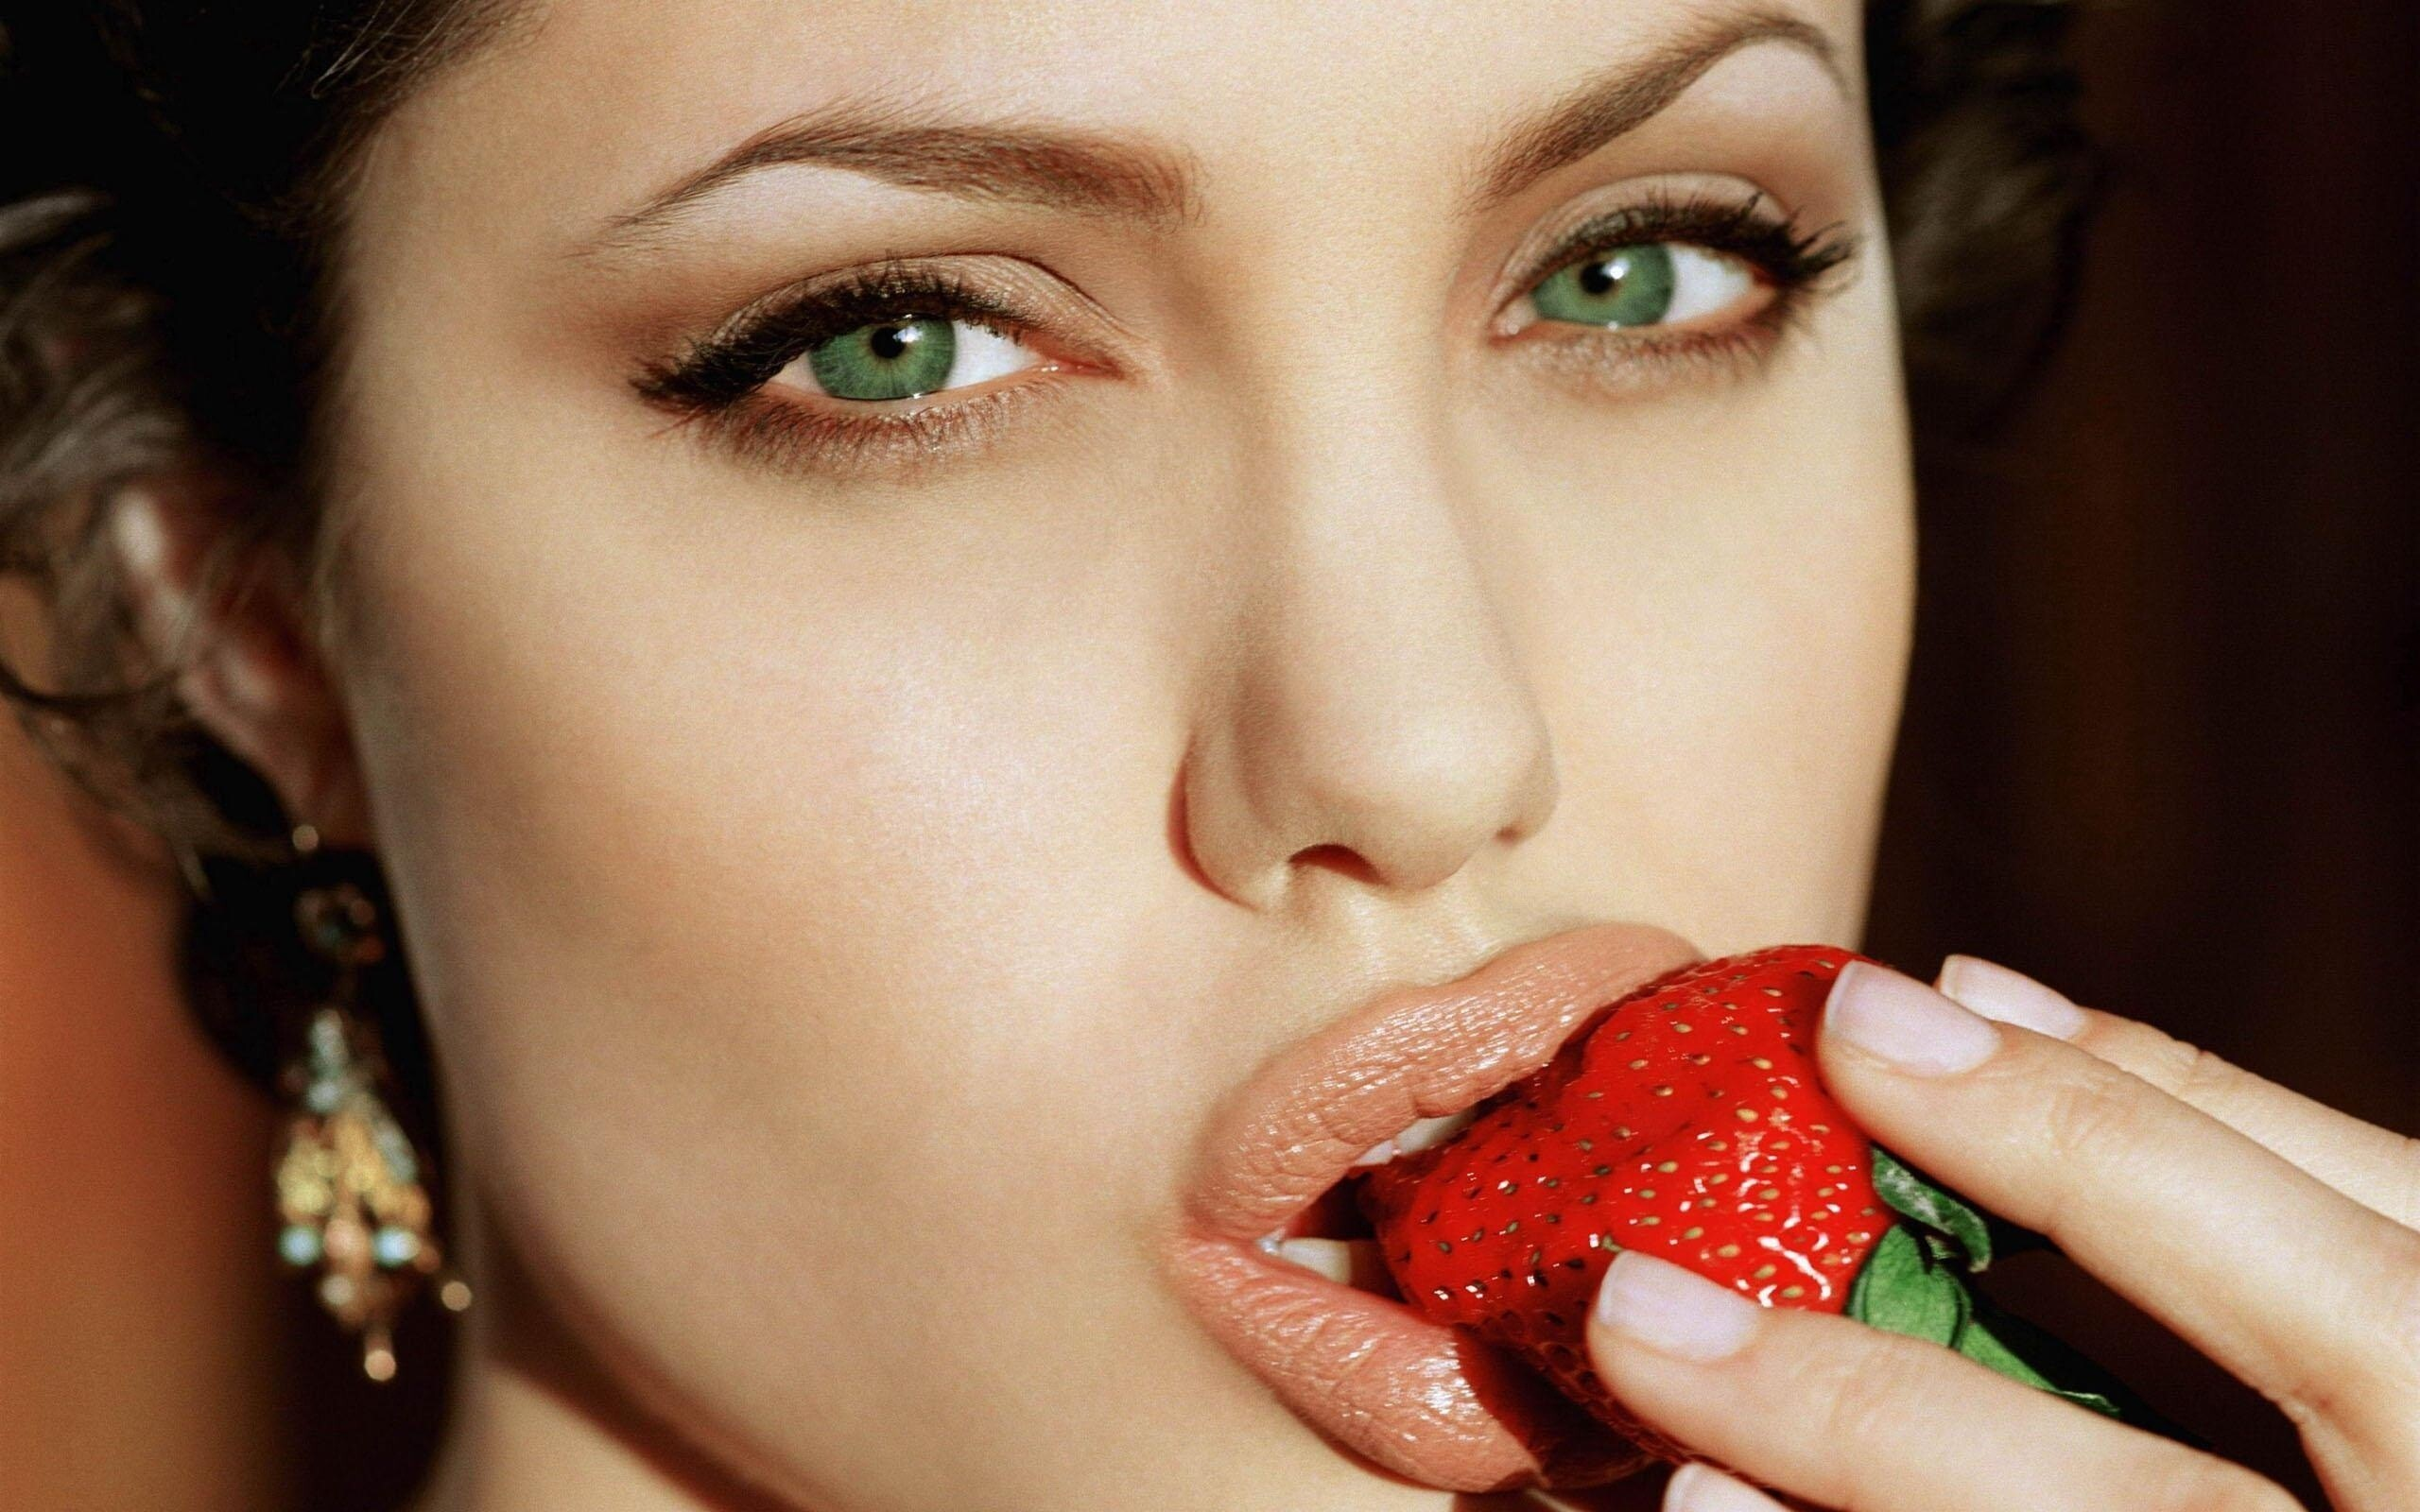 angelina jolie eating strawberry | hd wallpapers